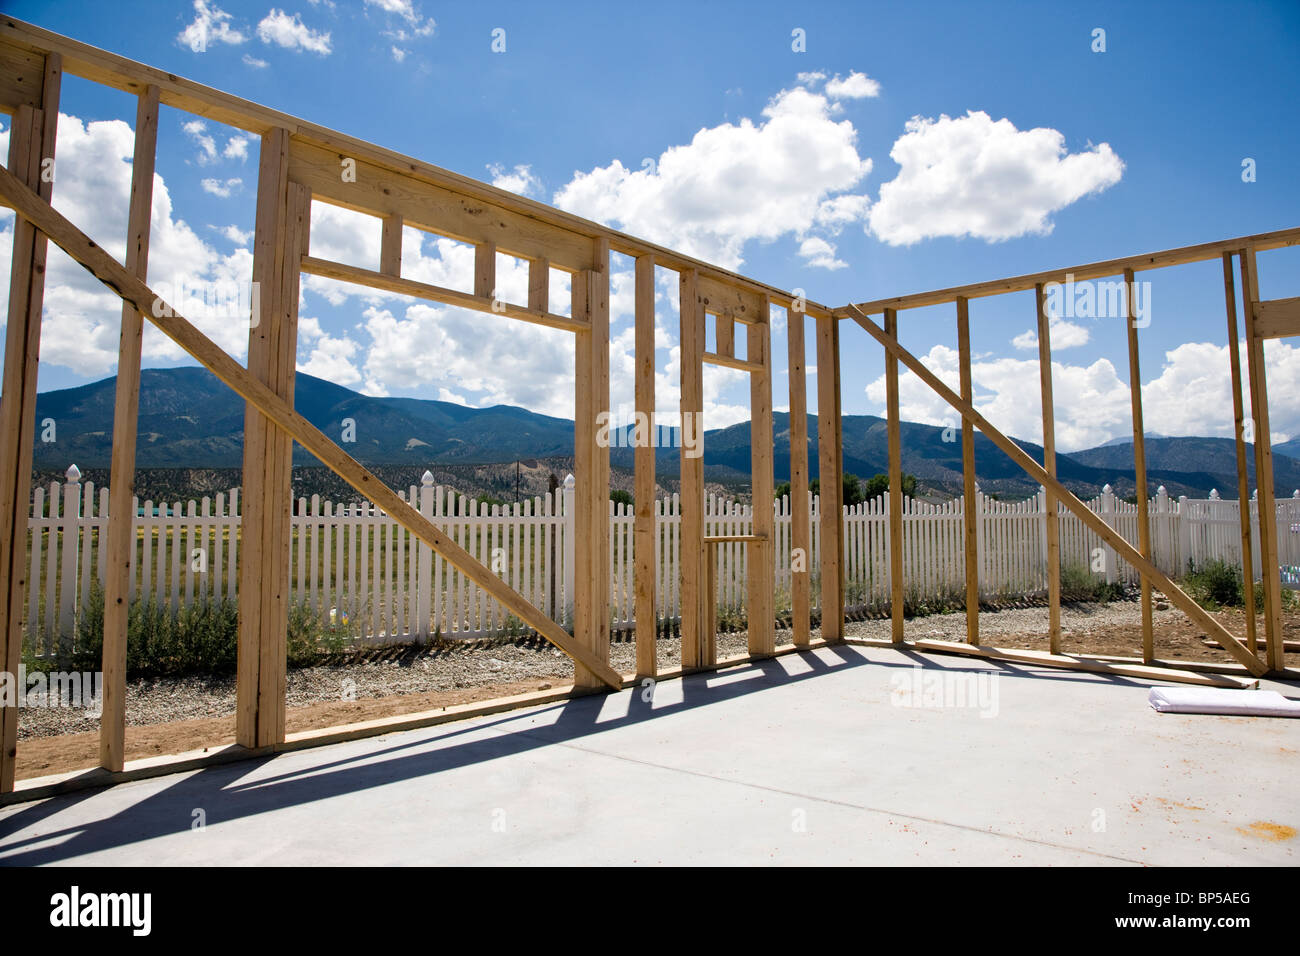 Construction of a Craftsman Style residential home in Colorado, USA - Stock Image